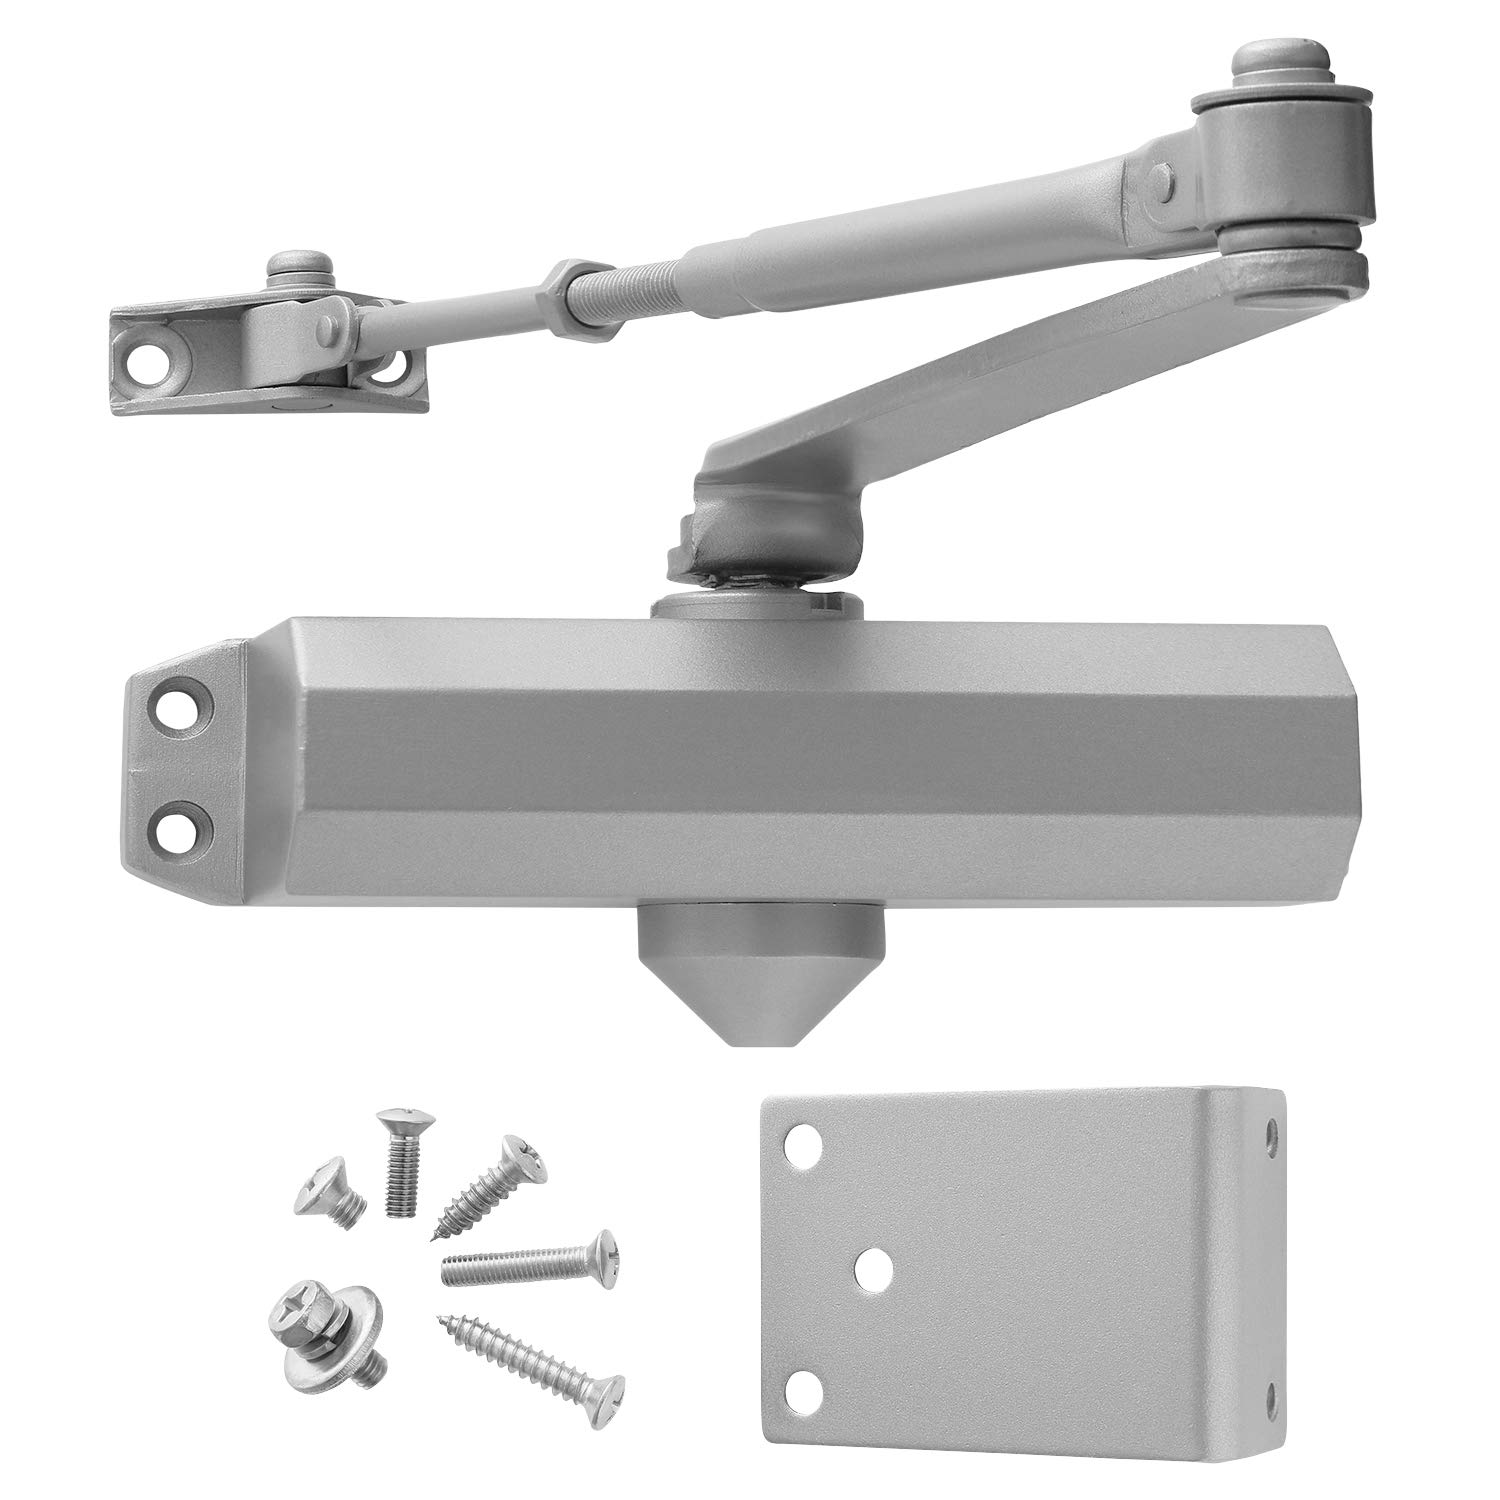 Standard Duty Adjustable Commercial Door Closer, Power Size #3, Automatic Closing and Latching, for Interior and Light Commercial Doors by Lawrence Hardware LH303